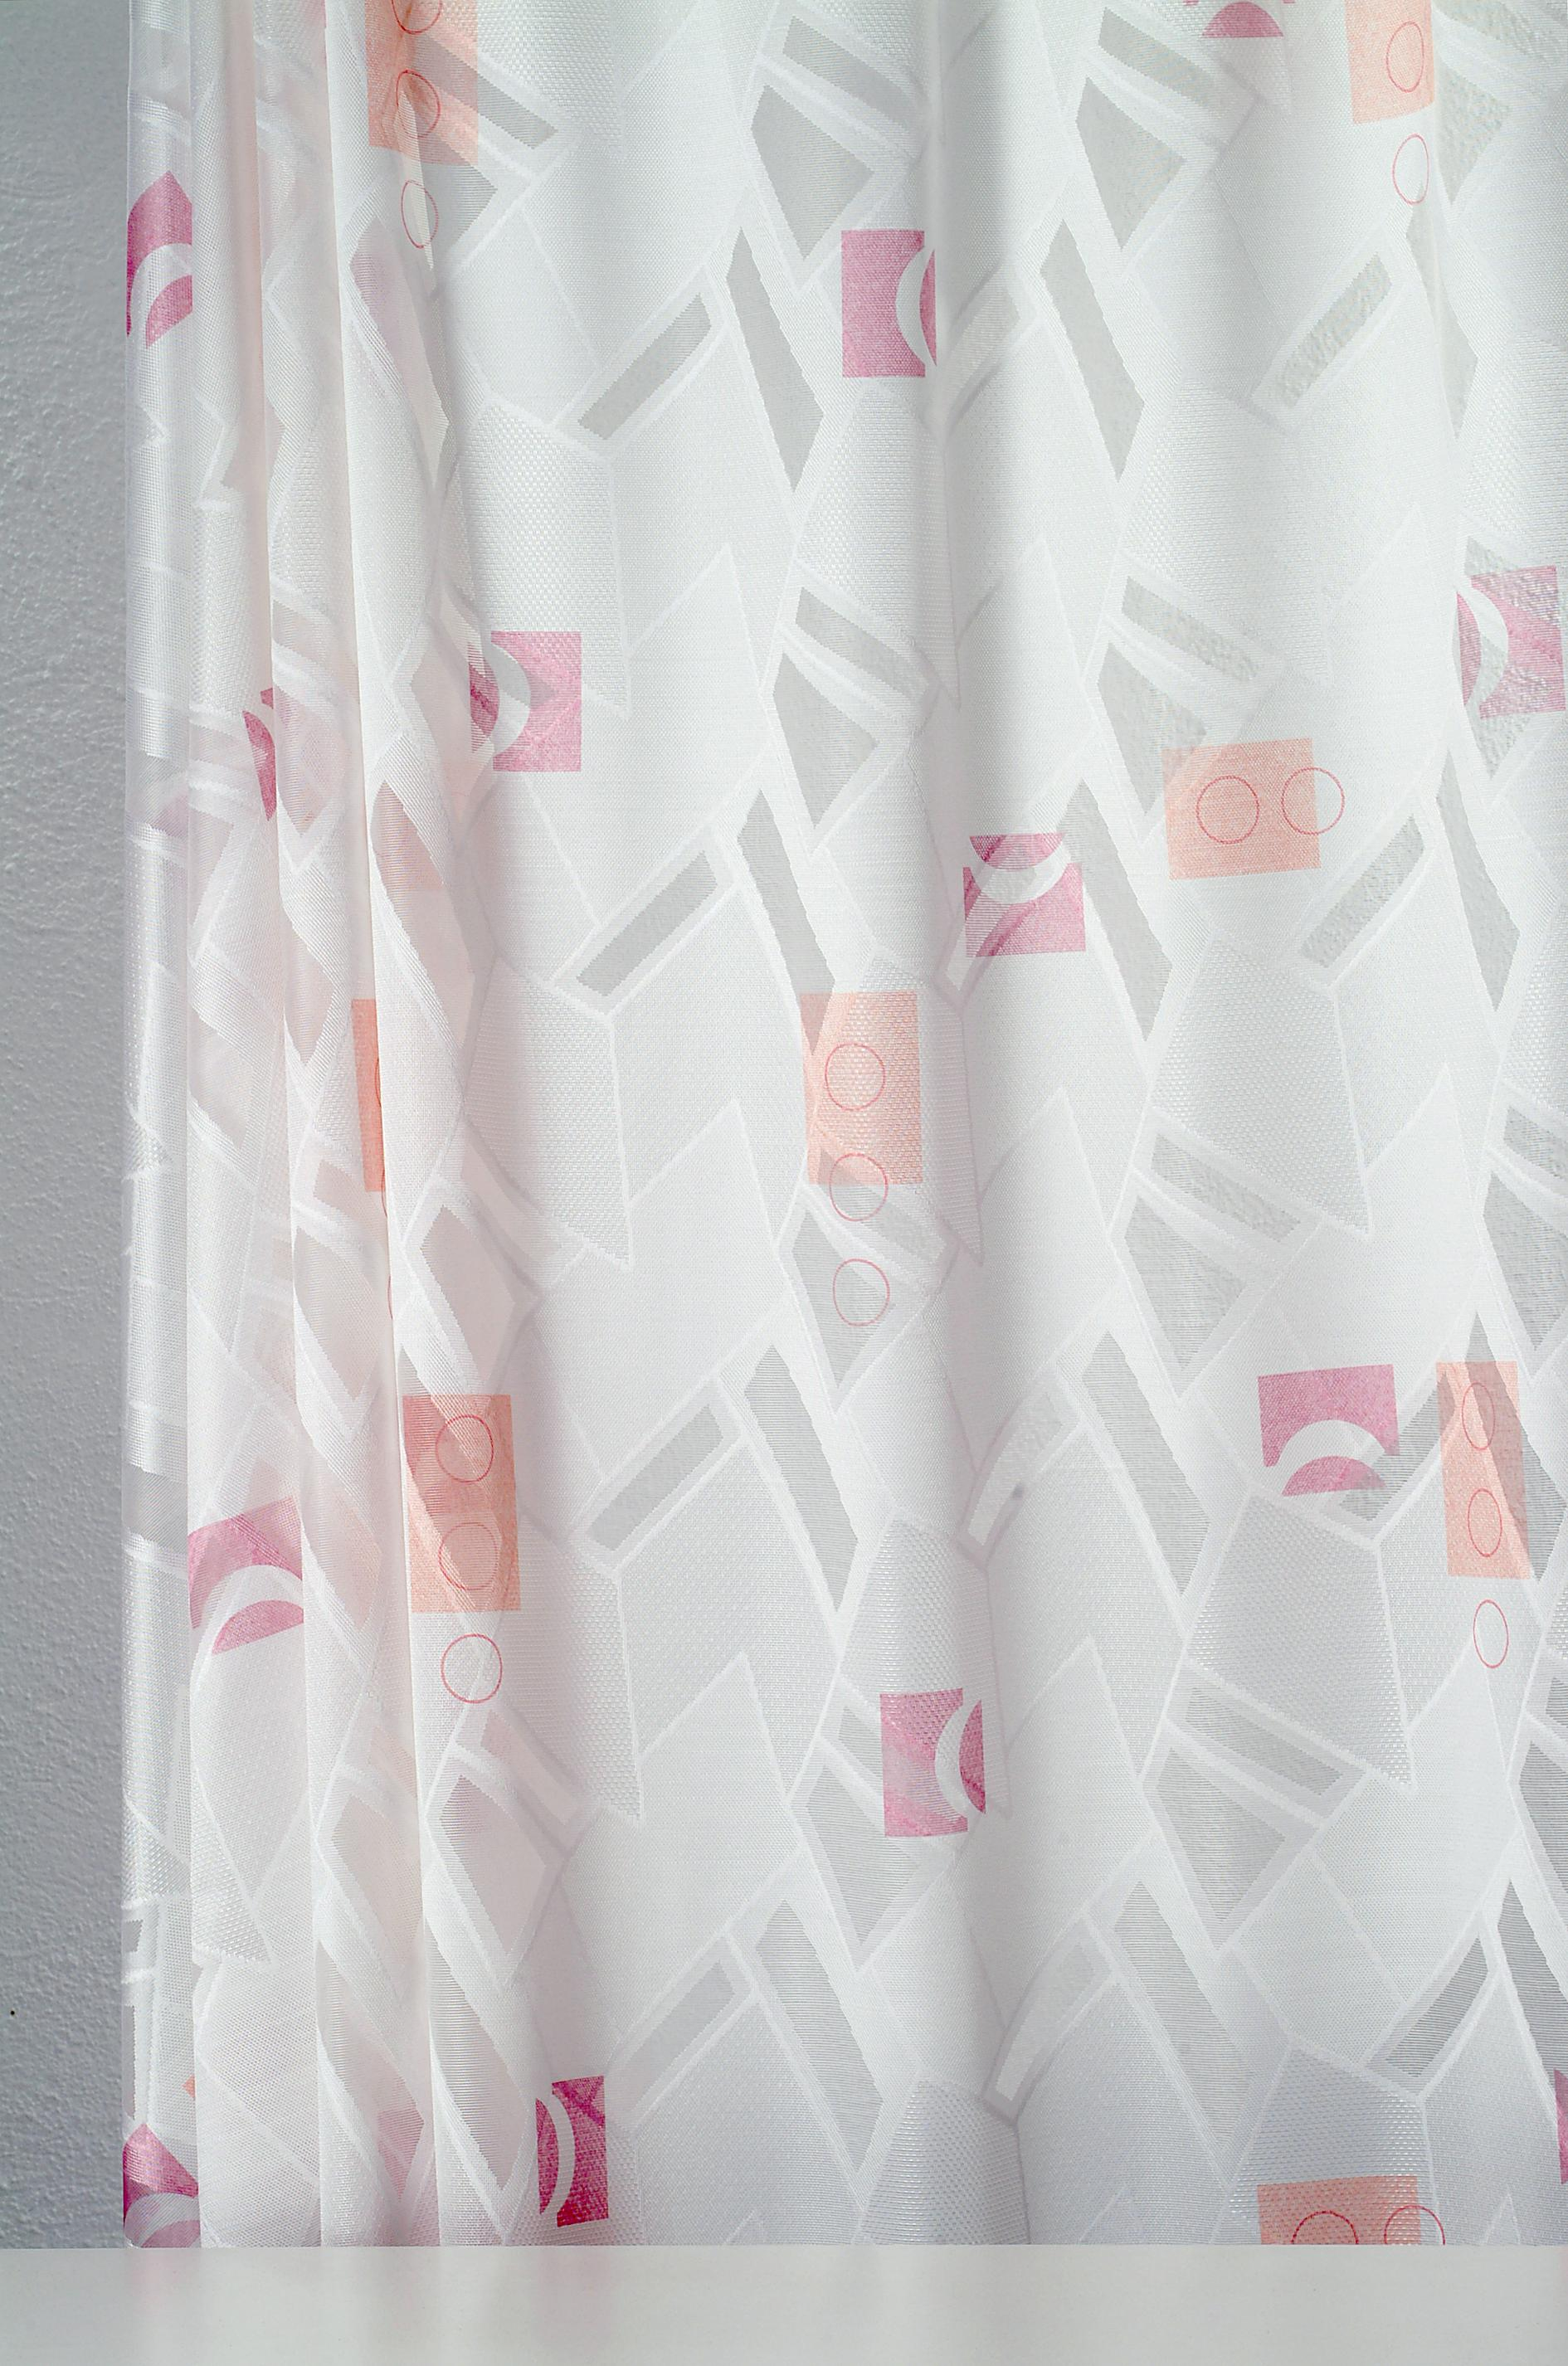 reef fashions panel lace window home knitted curtains curtain lorraine only by